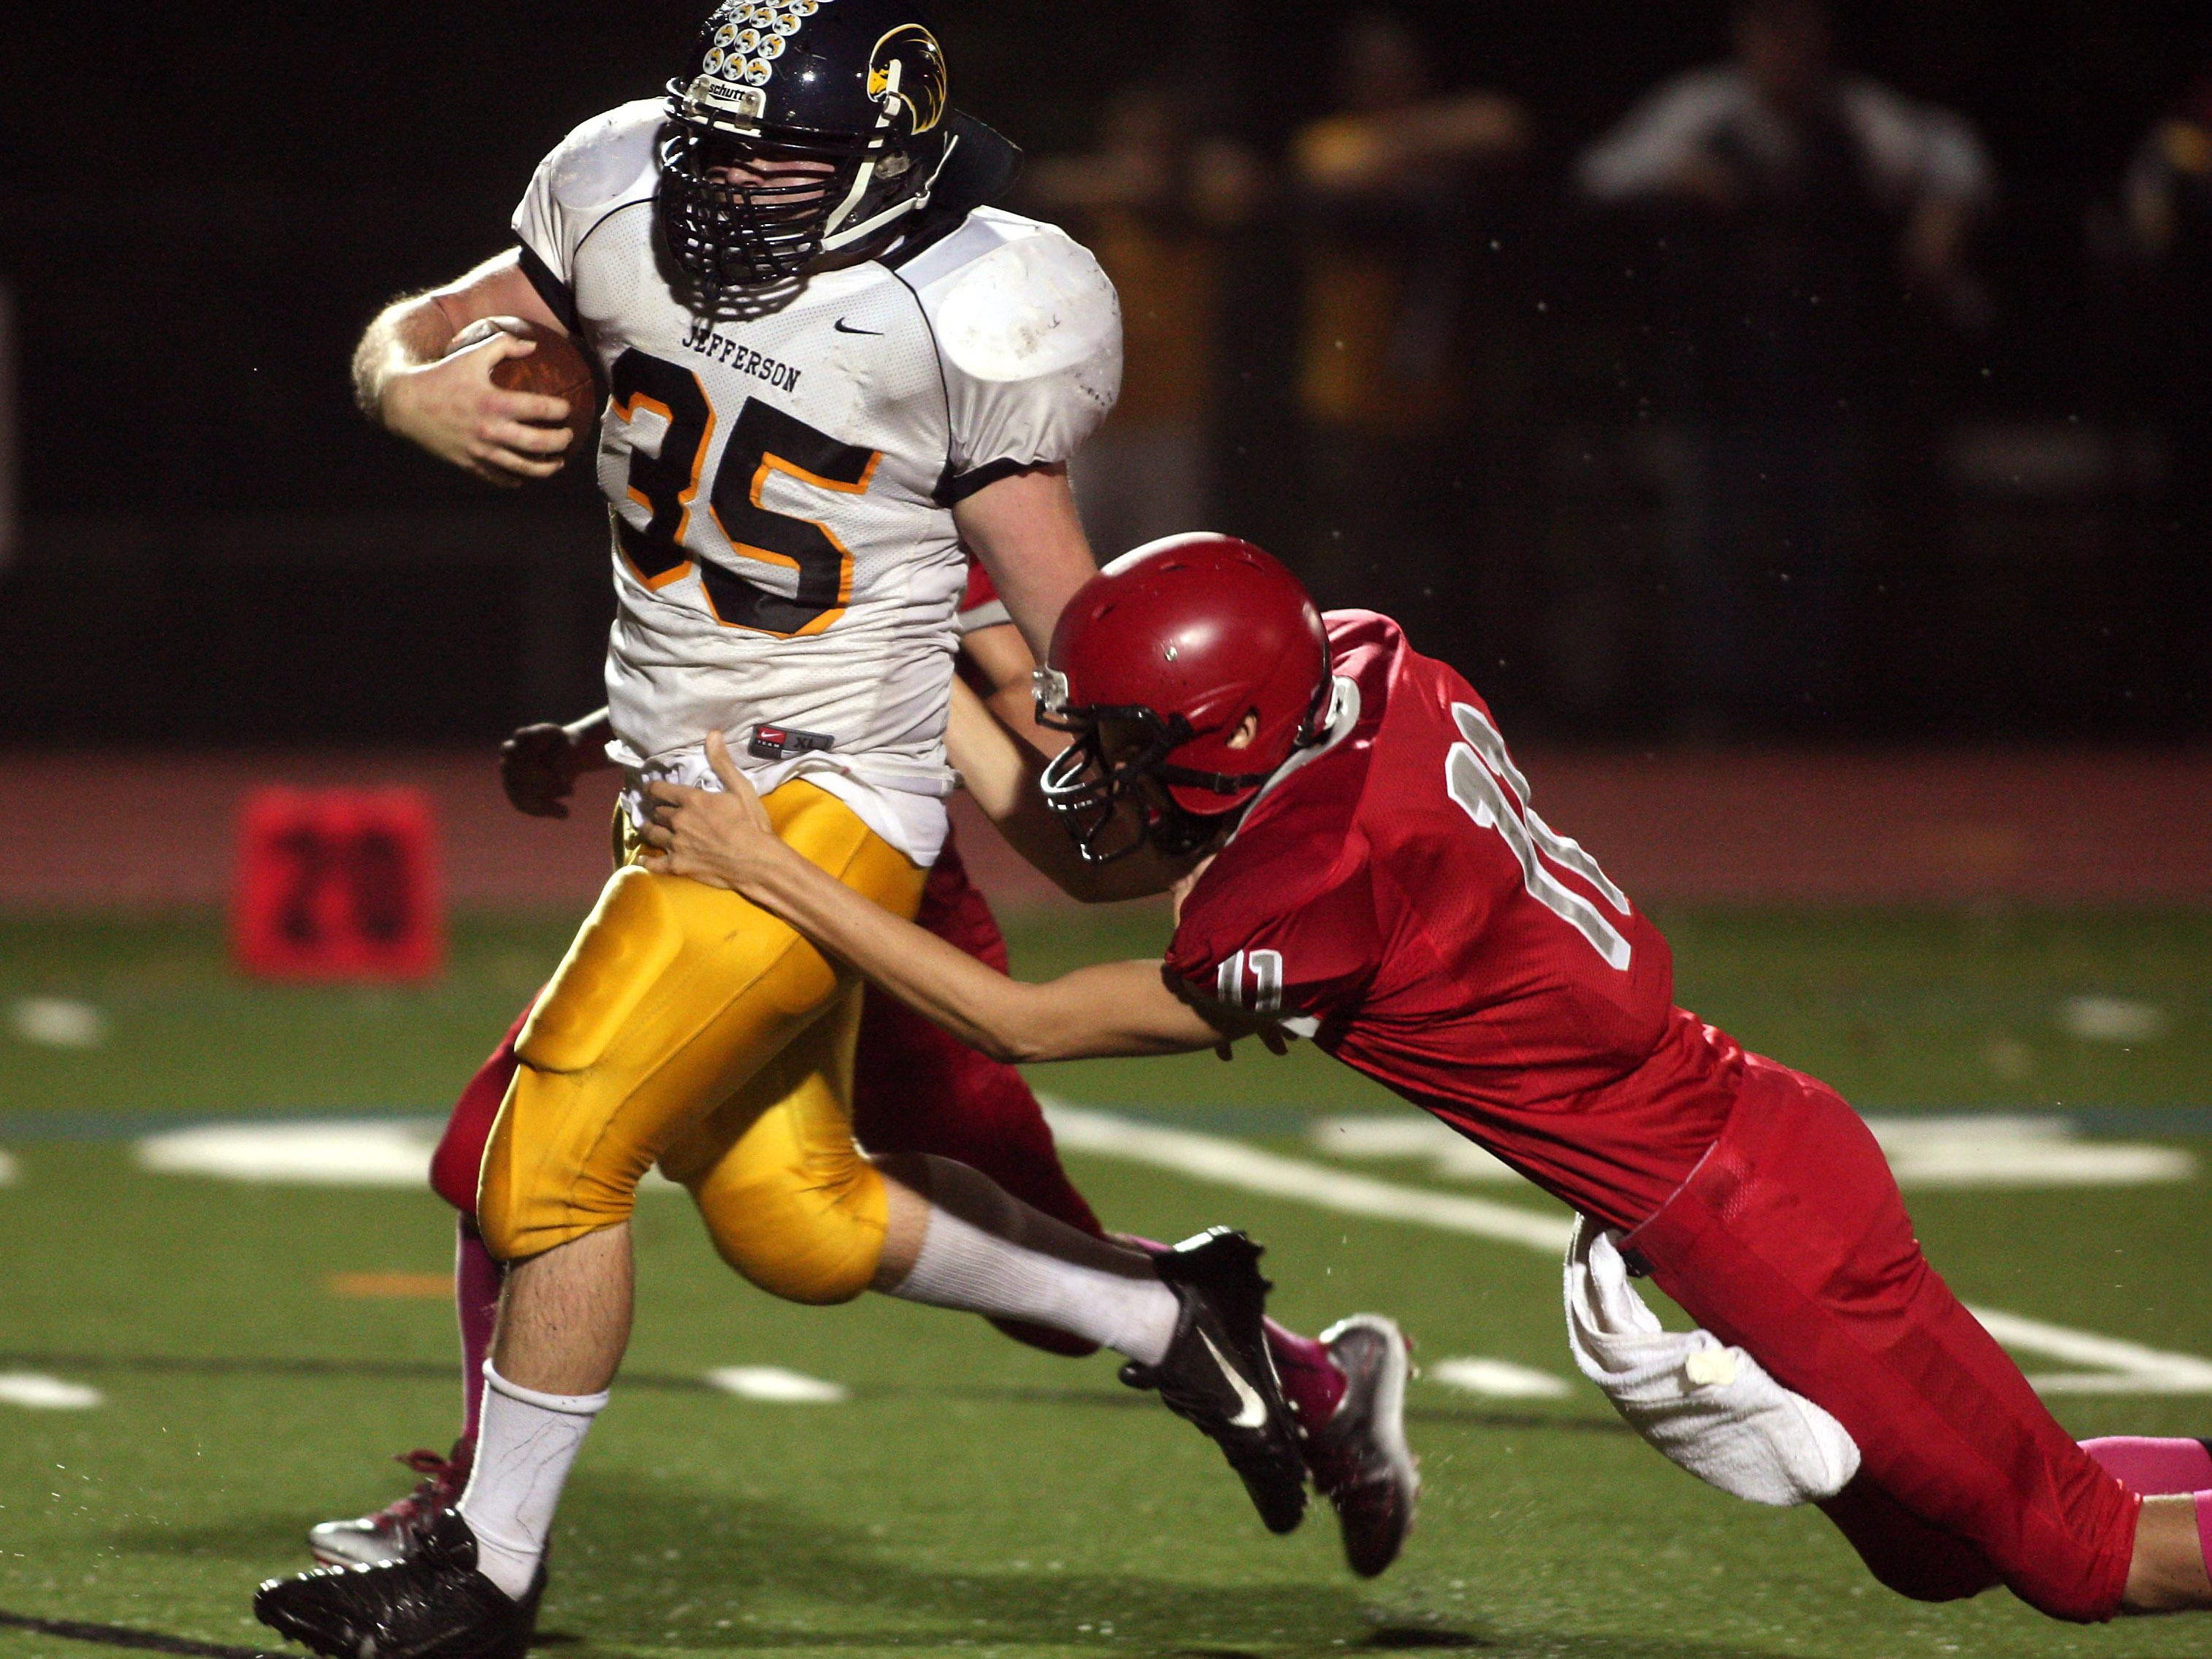 Jefferson linebacker Avery Sheruda barrels to the Parsippany 4-yard-line after picking up a fumble on Friday night.